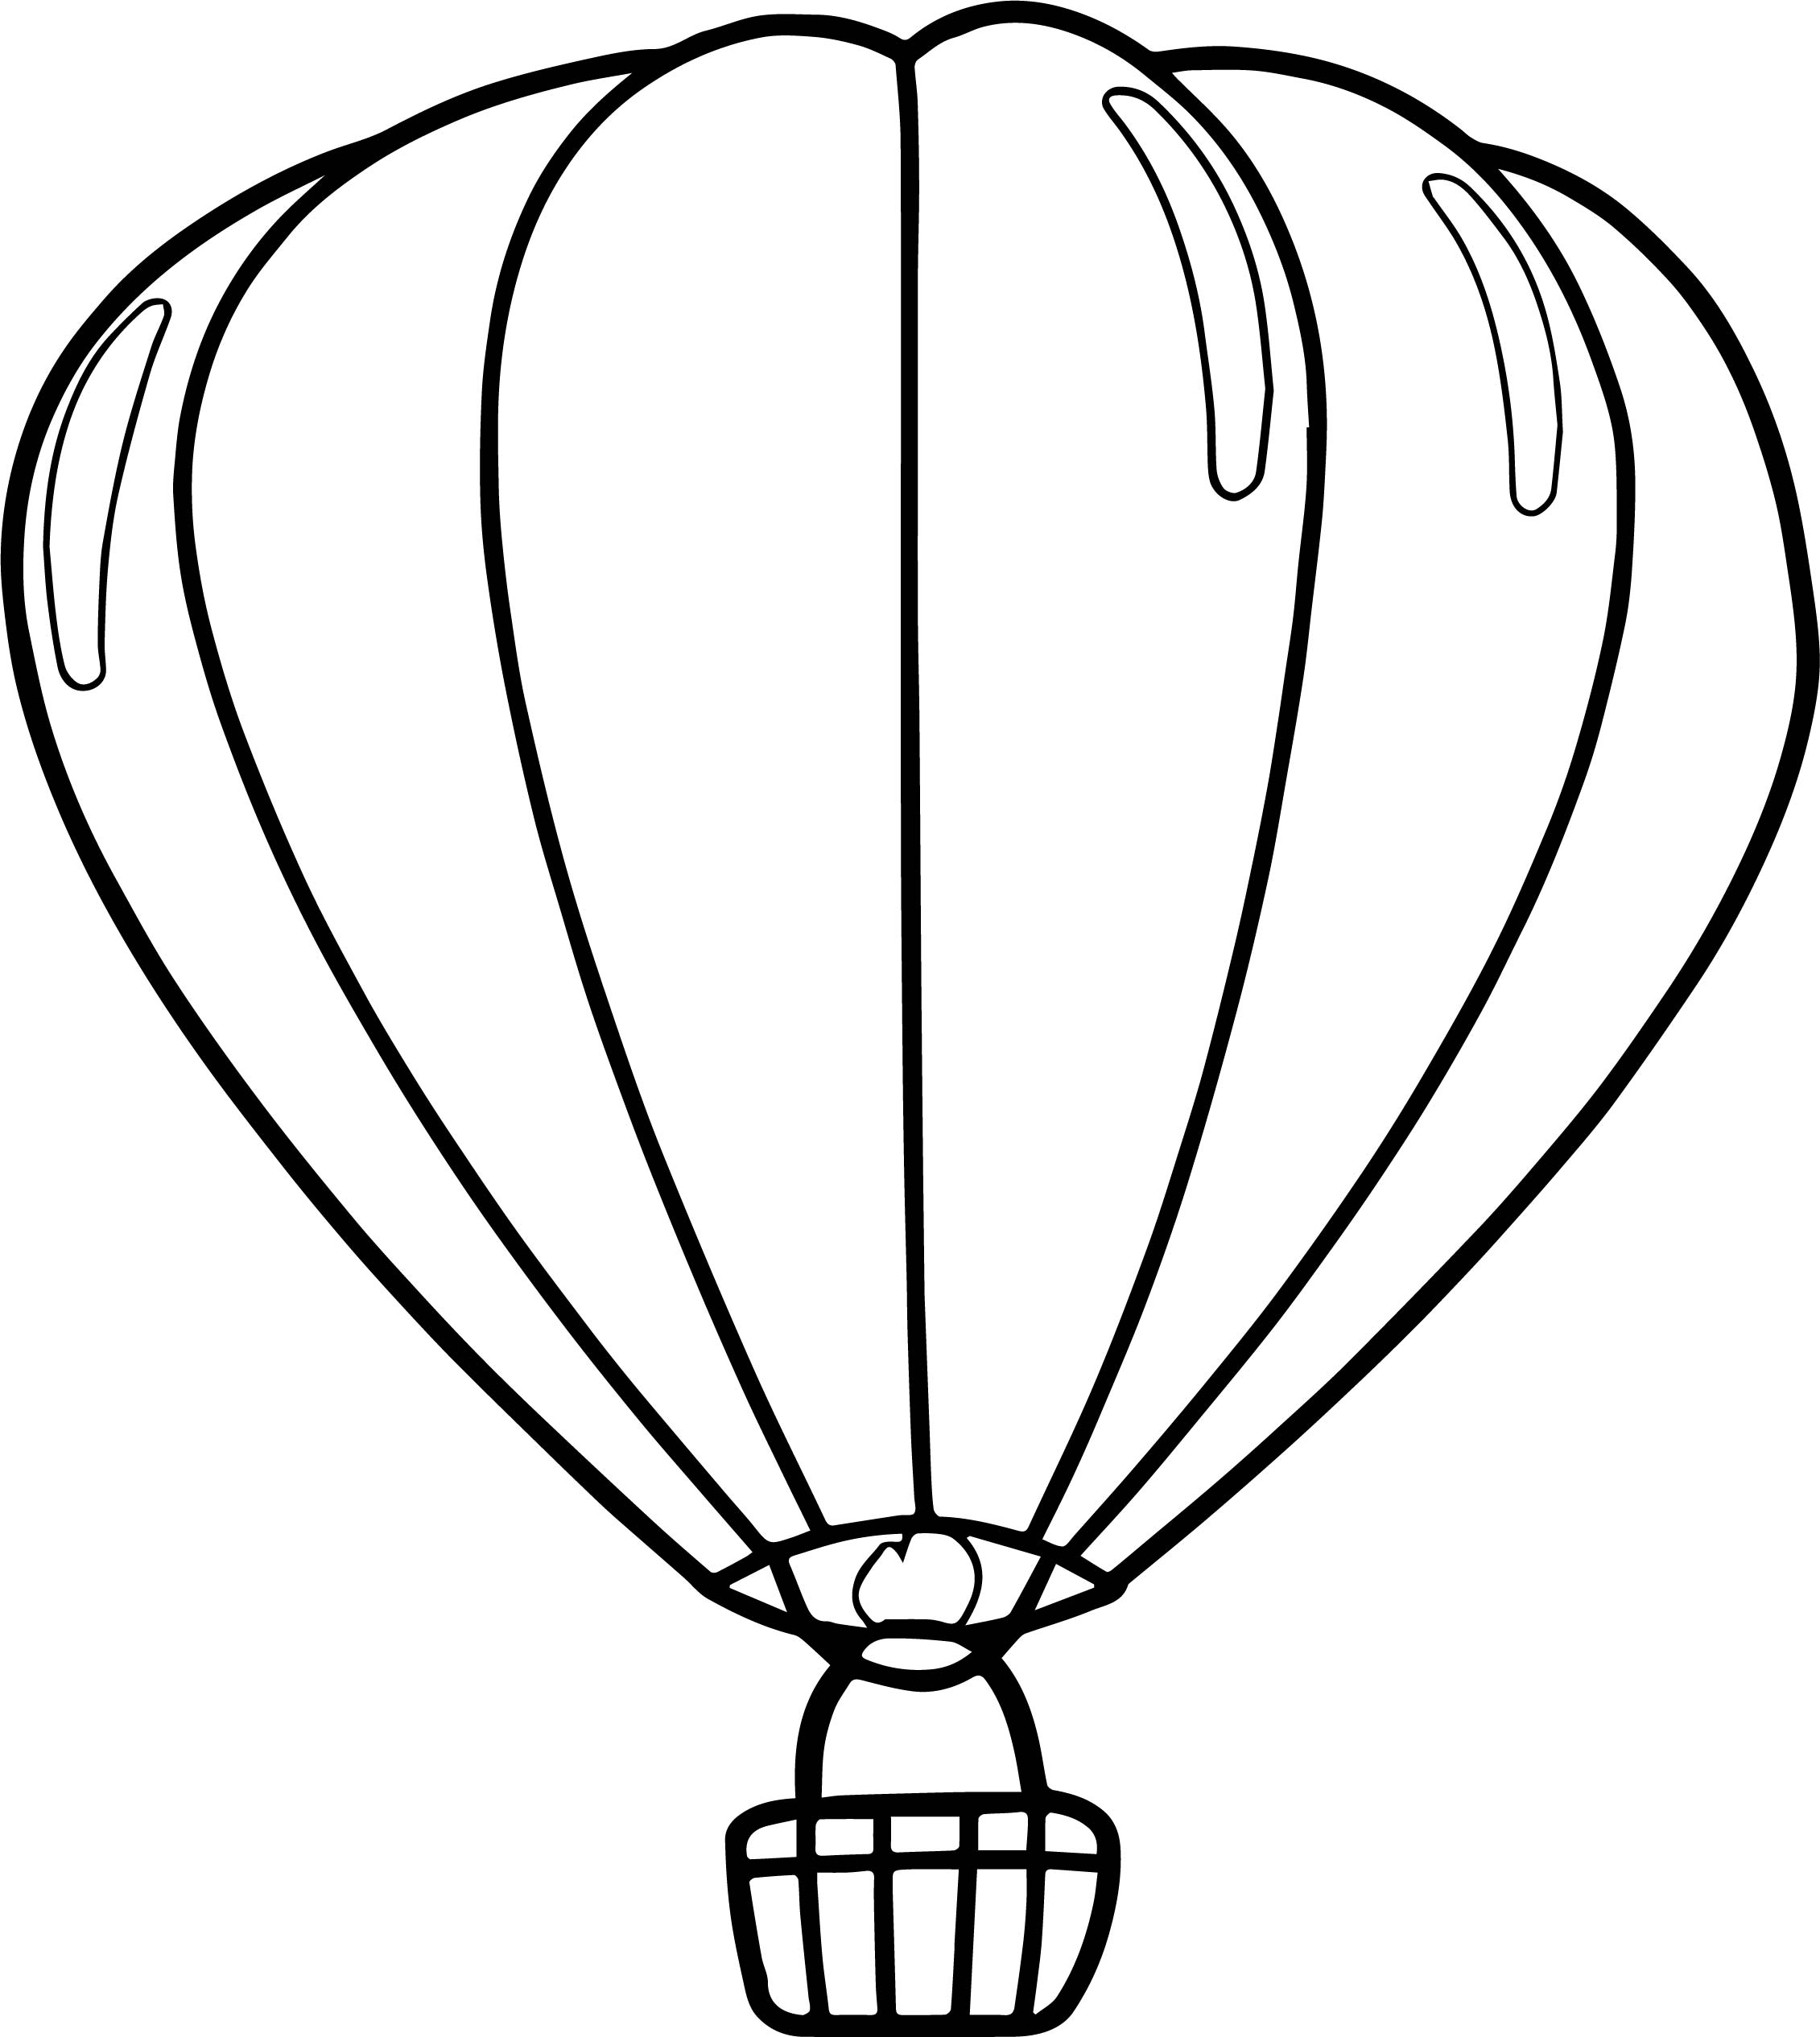 2261x2531 Balloon Coloring Pages Coloring Pages Printable